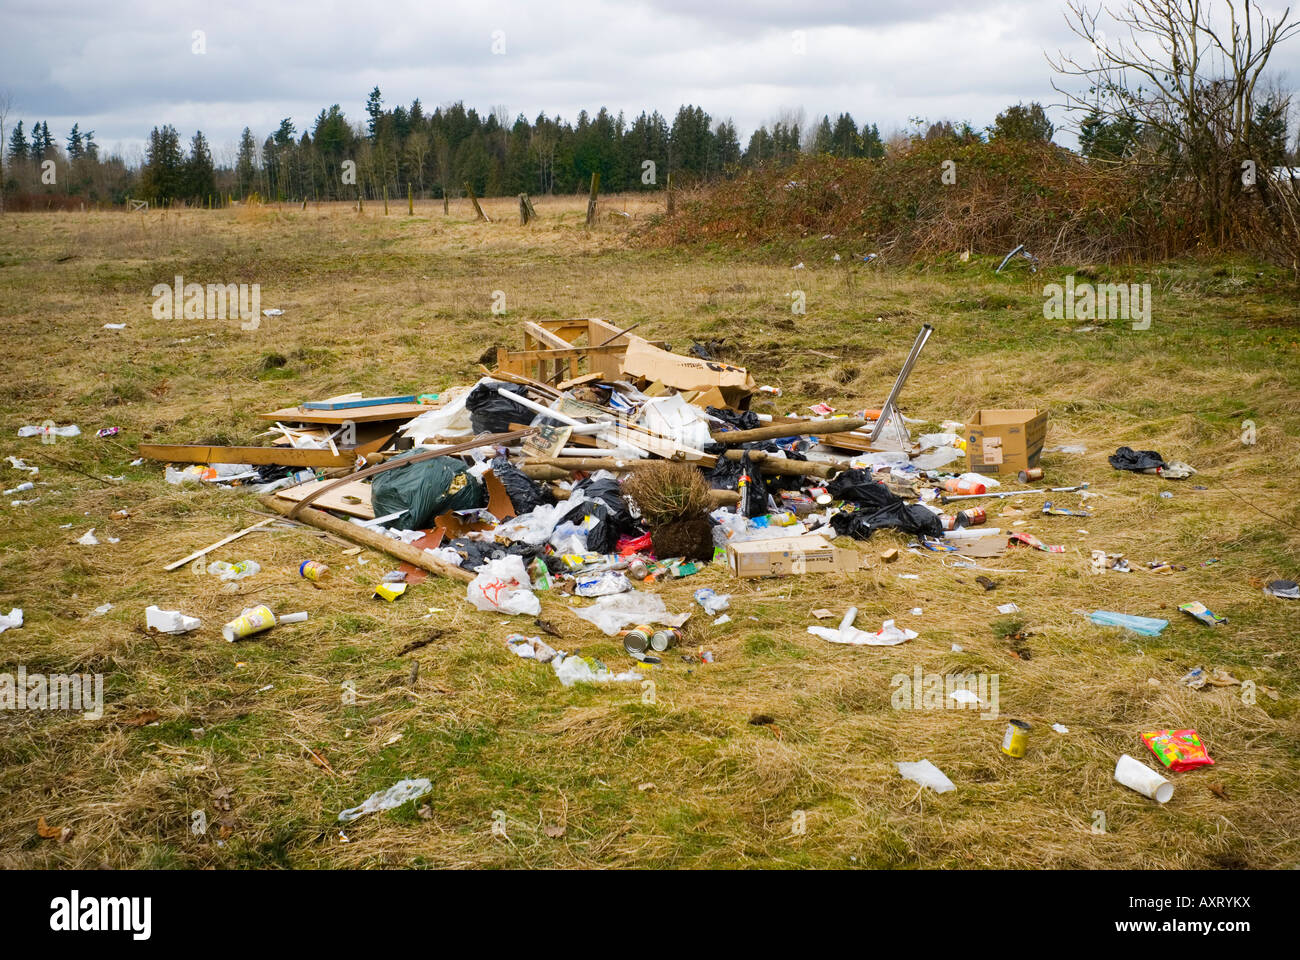 Illegally dumped garbage lies in a field - Stock Image